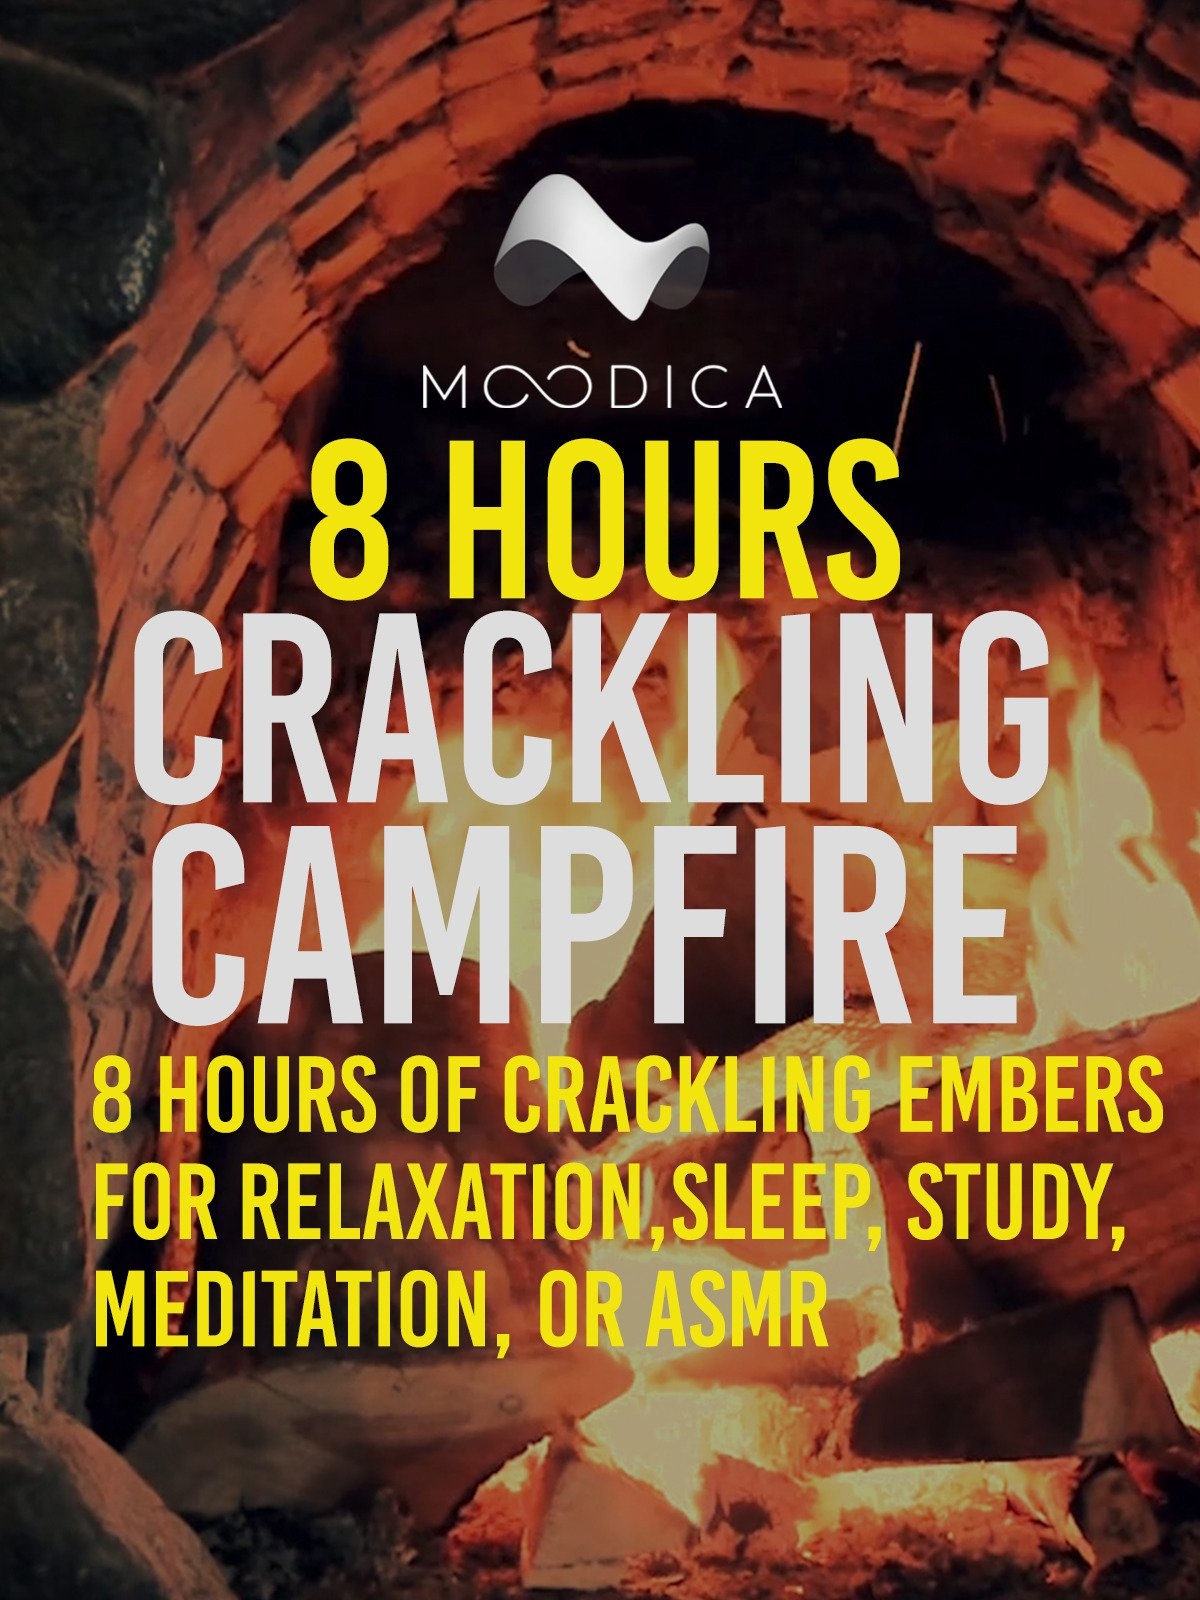 8 hours: Crackling Campfire: 8 Hours of Crackling Embers for Relaxation, Sleep, Study, Meditation, or ASMR